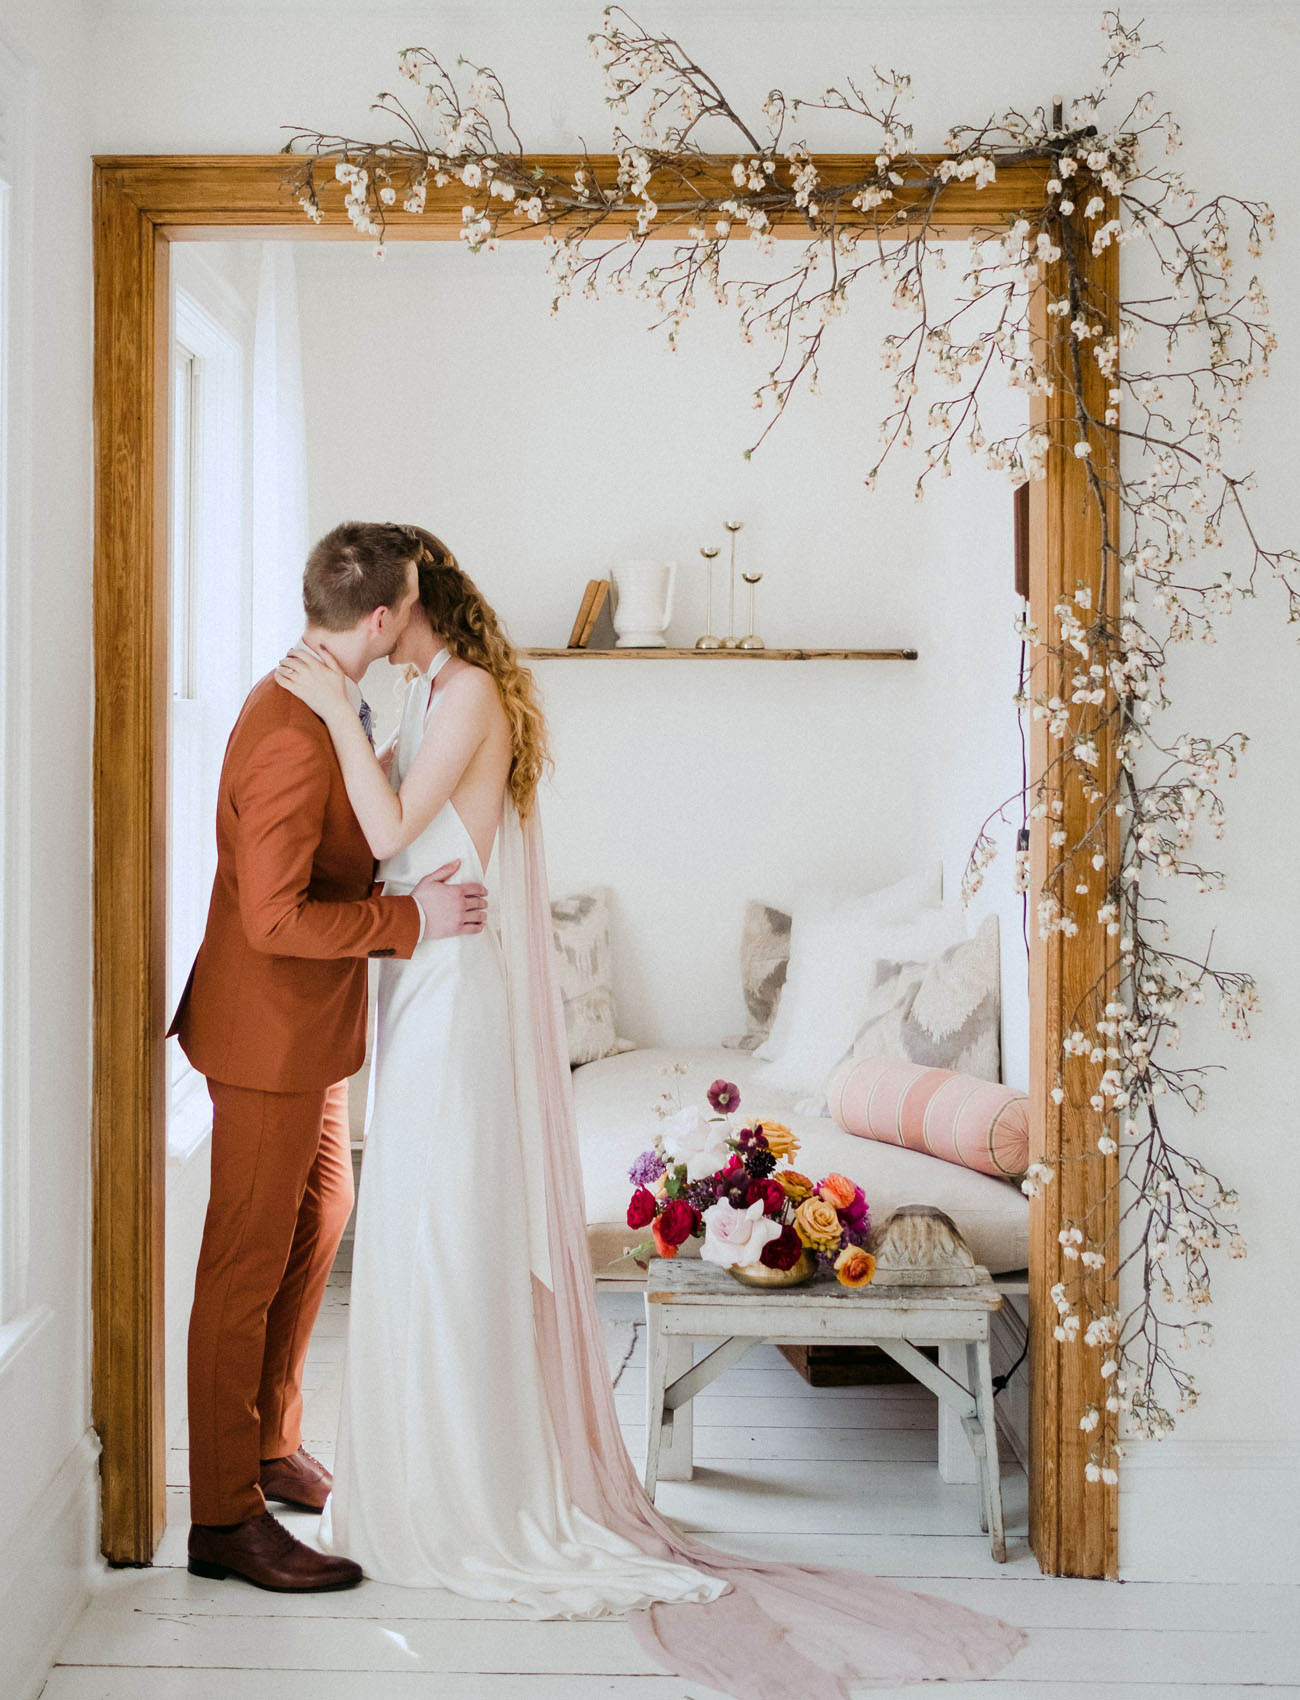 This wedding shoot is done in Scandinavian minimalist aesthetics with a bright Moroccan color palette